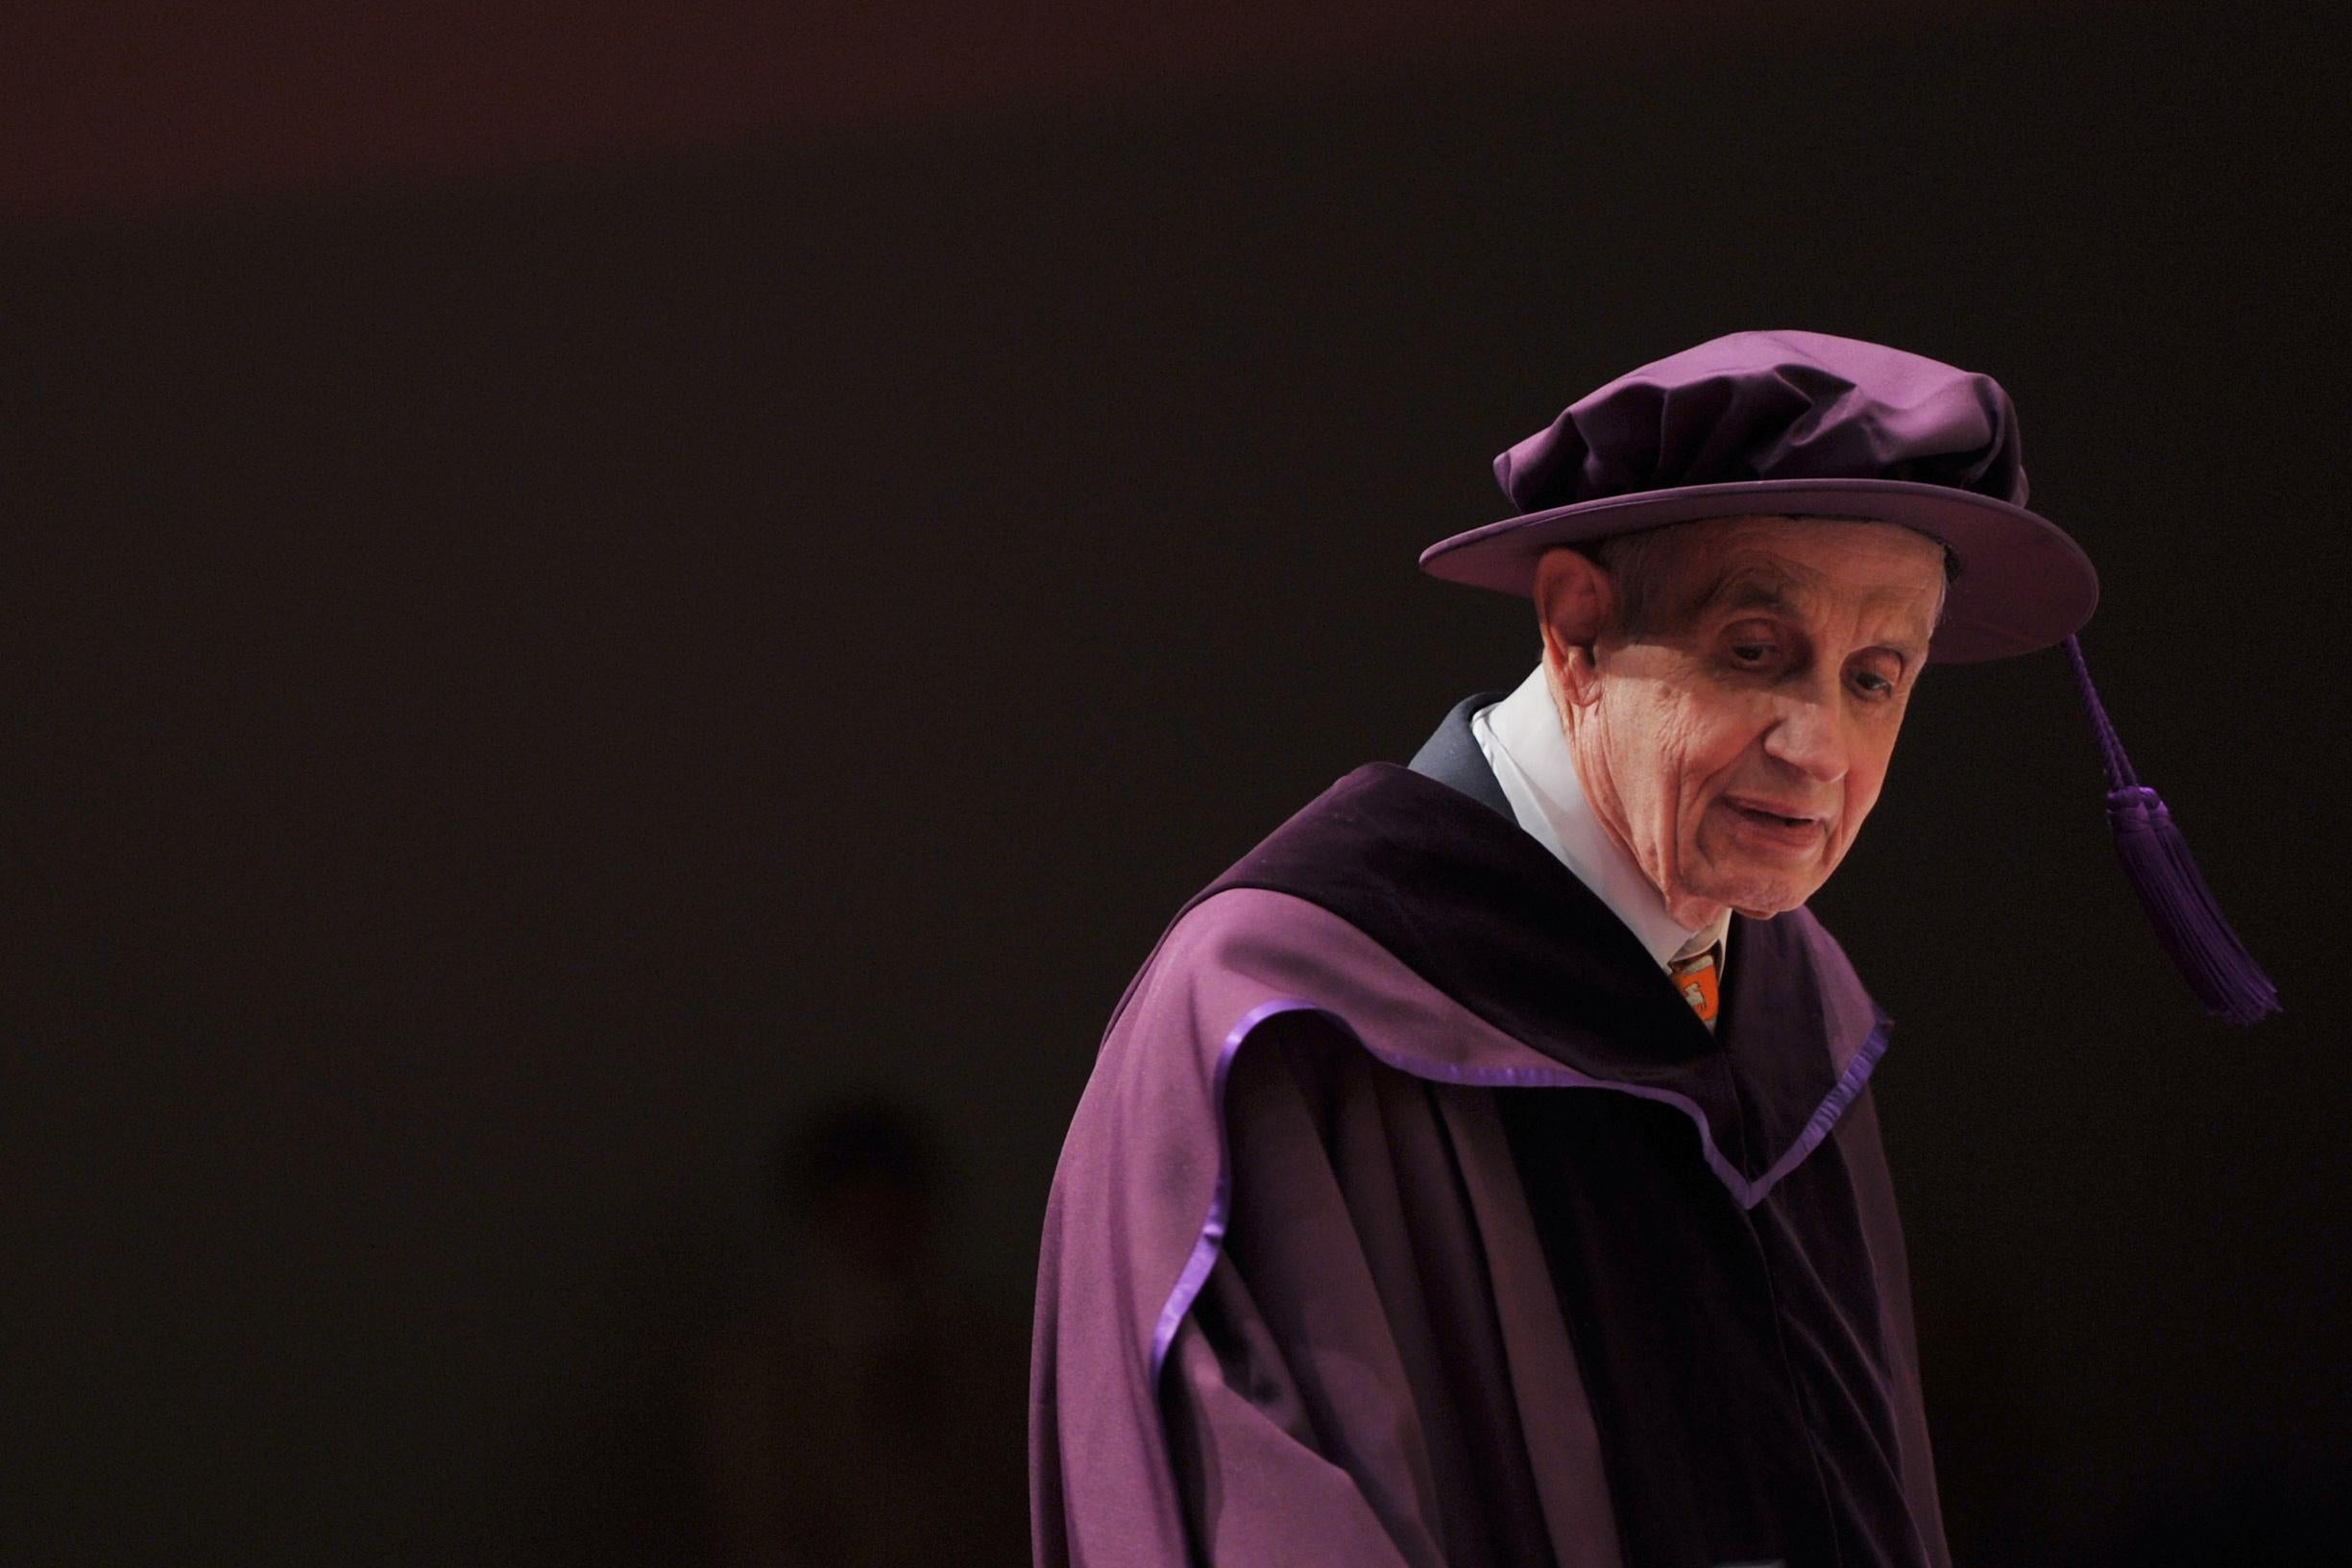 Professor John Forbes Nash, Jr, winner of the Nobel Prize in Economic Sciences, was conferred an honorary doctorate of science at the City University of Hong Kong on November 8, 2011.